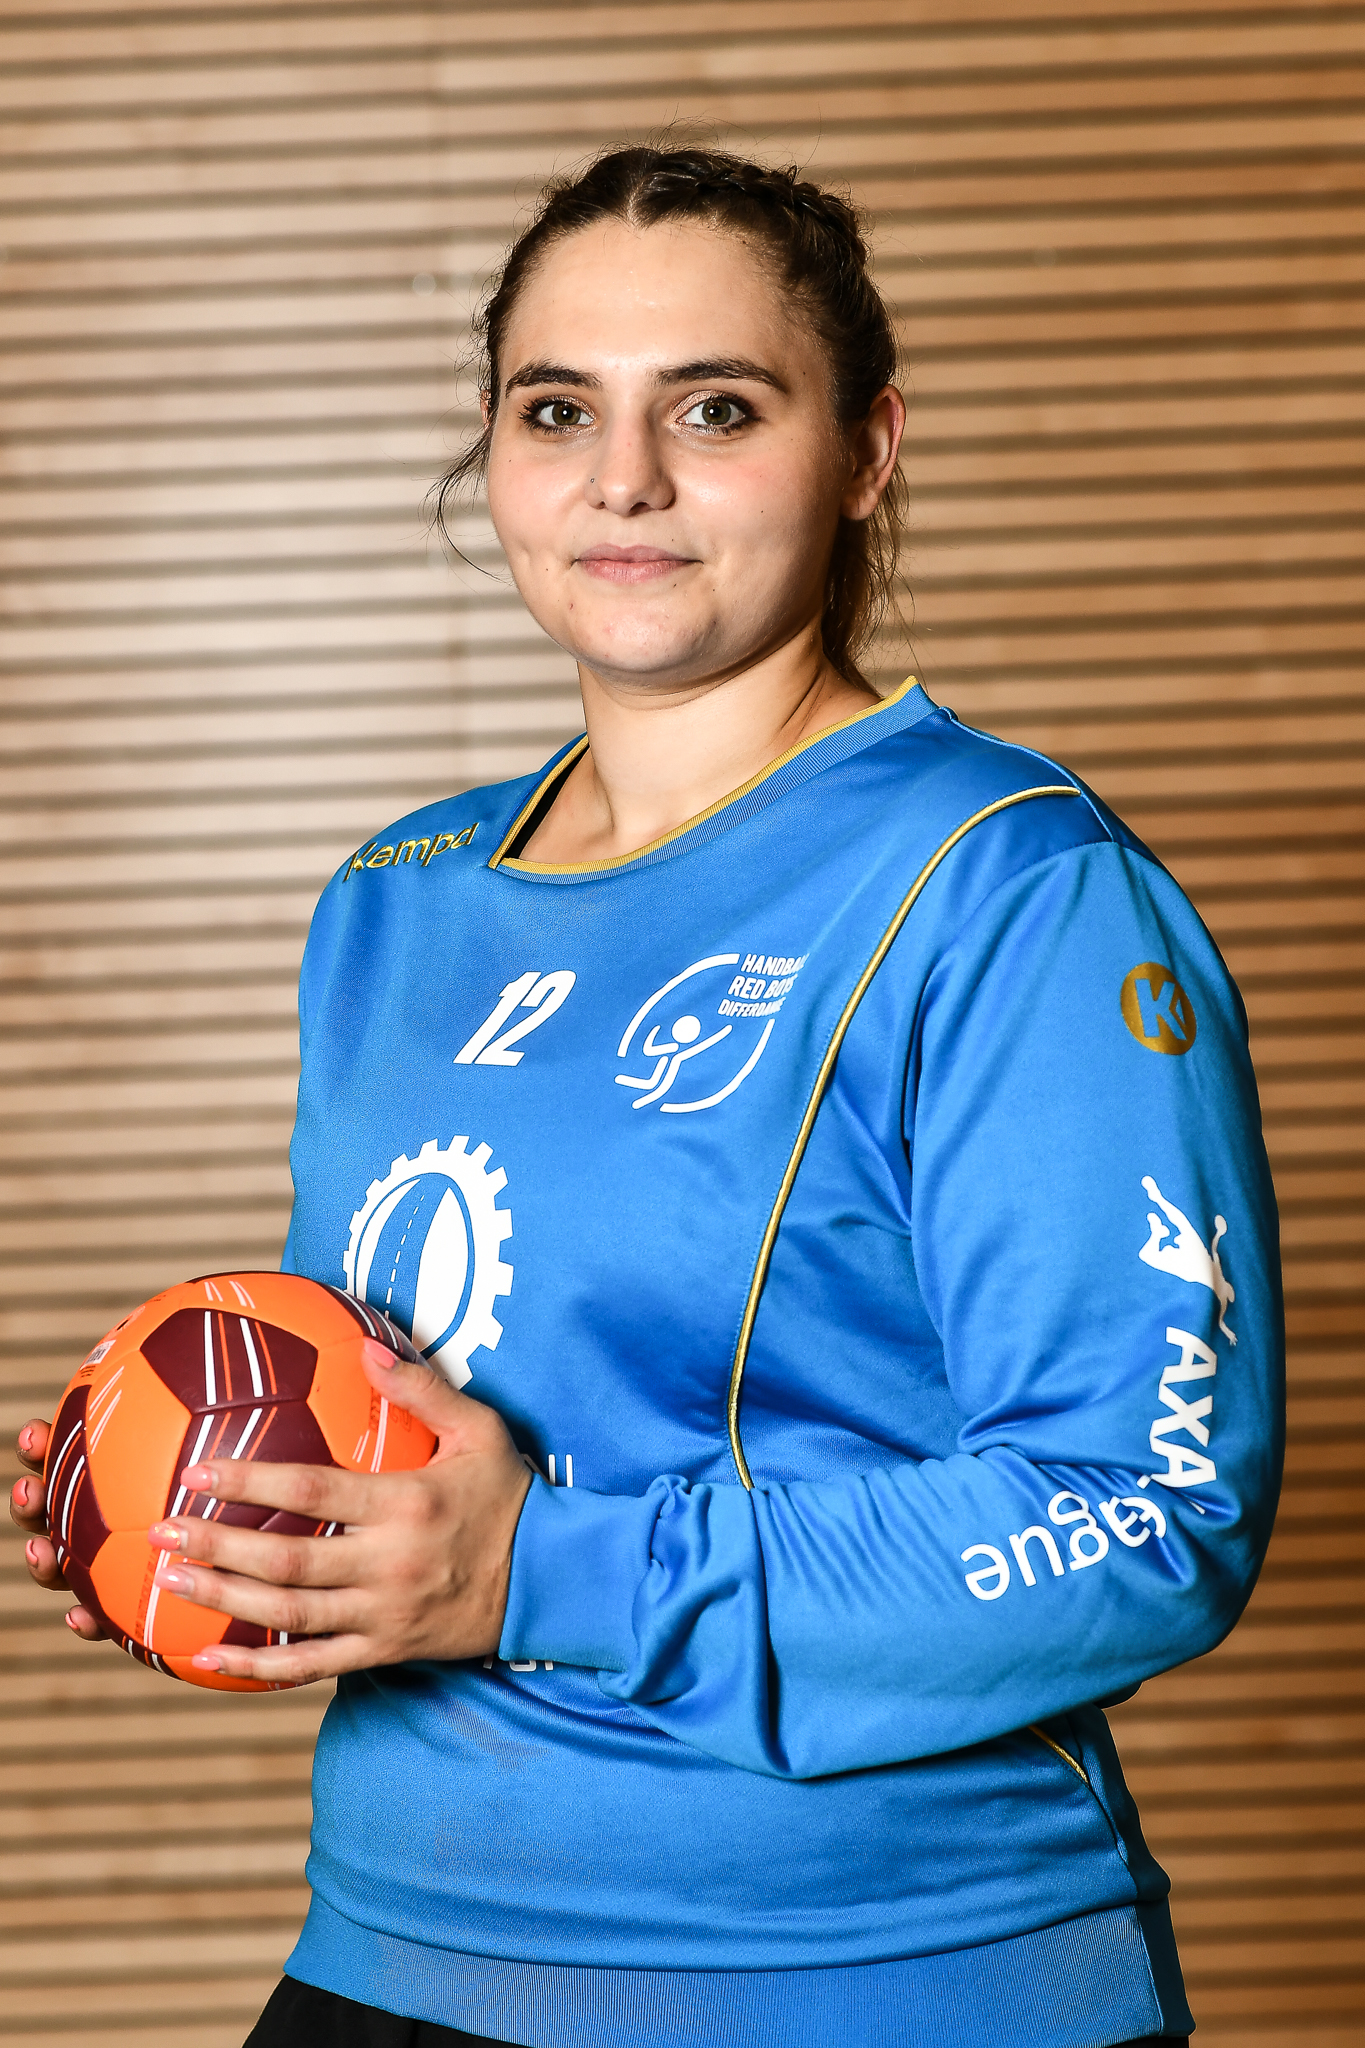 https://handball.lu/redboys/wp-content/uploads/2020/09/VAL_5883-201.jpg